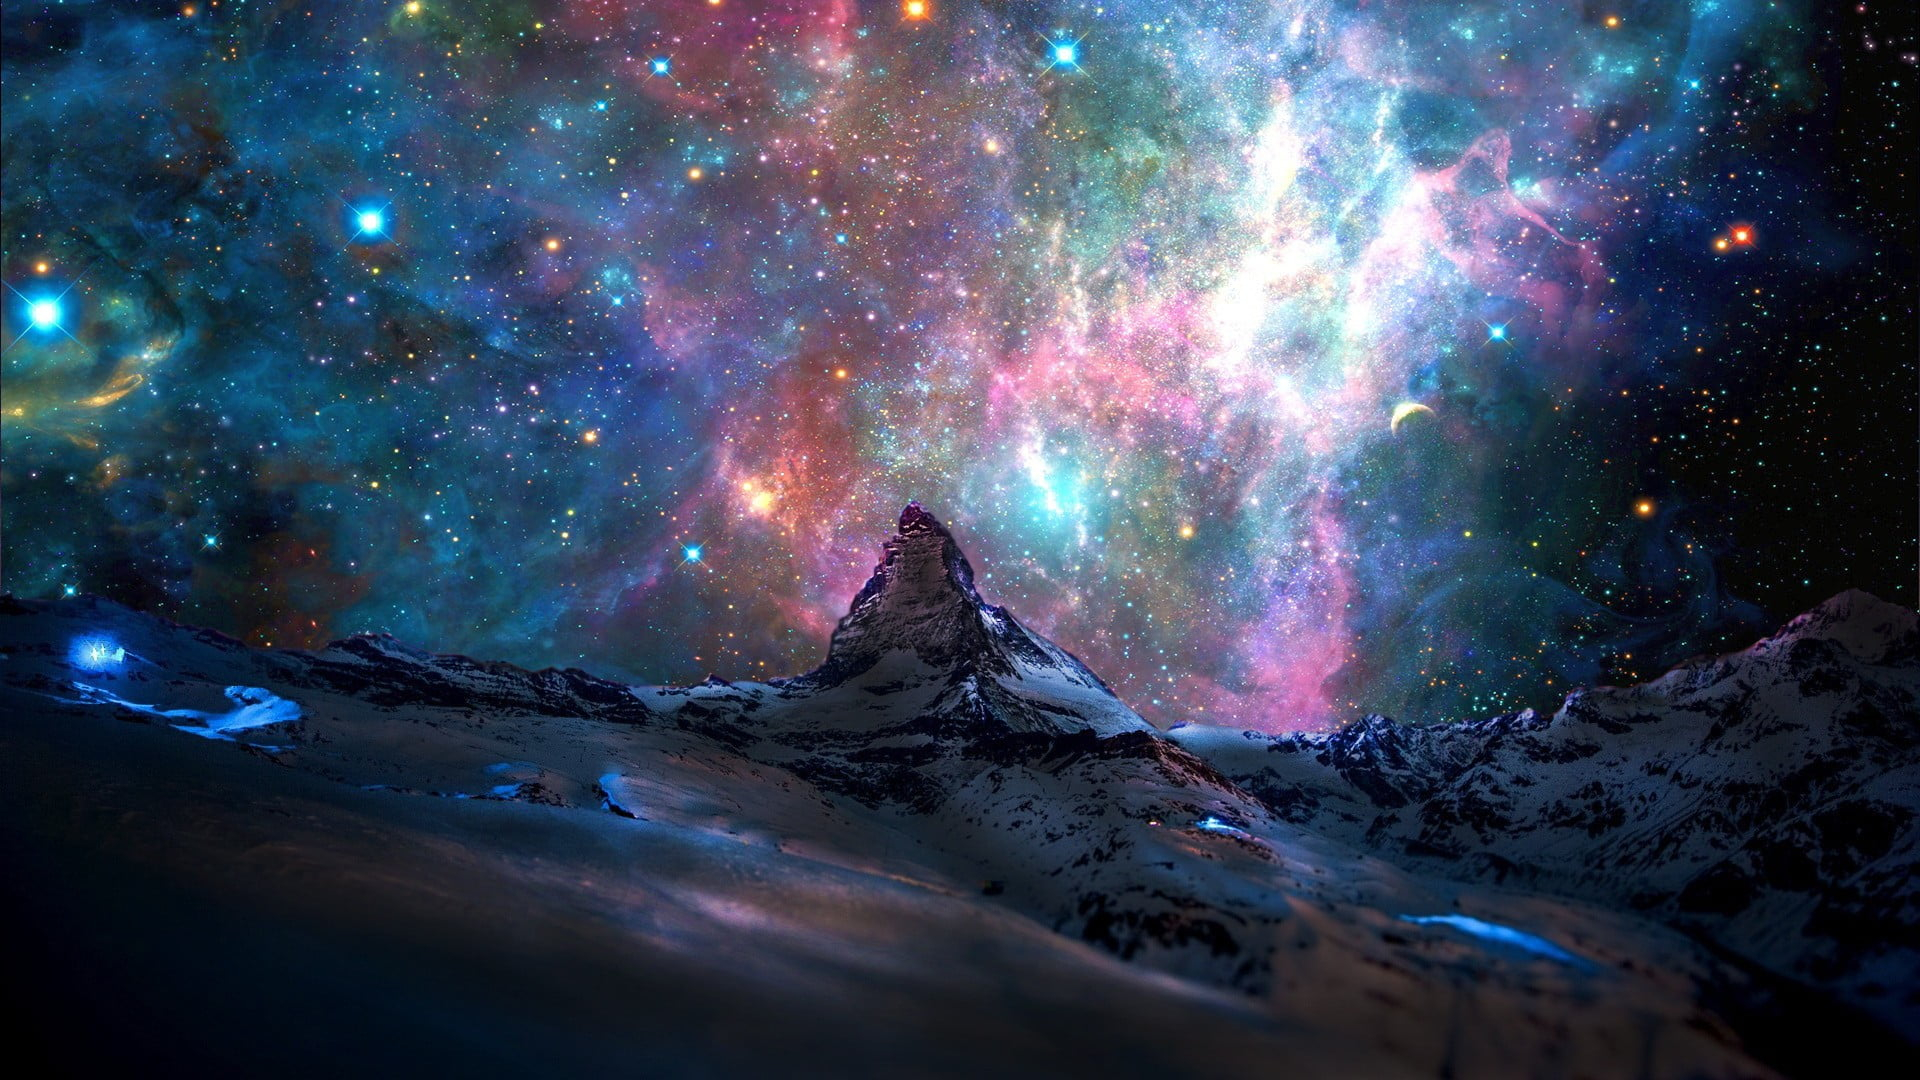 Dark Wallpaper Galaxy Wallpaper Cosmic Ray Illustration Stars Mountains Nebula Wallpaper For You The Best Wallpaper For Desktop Mobile